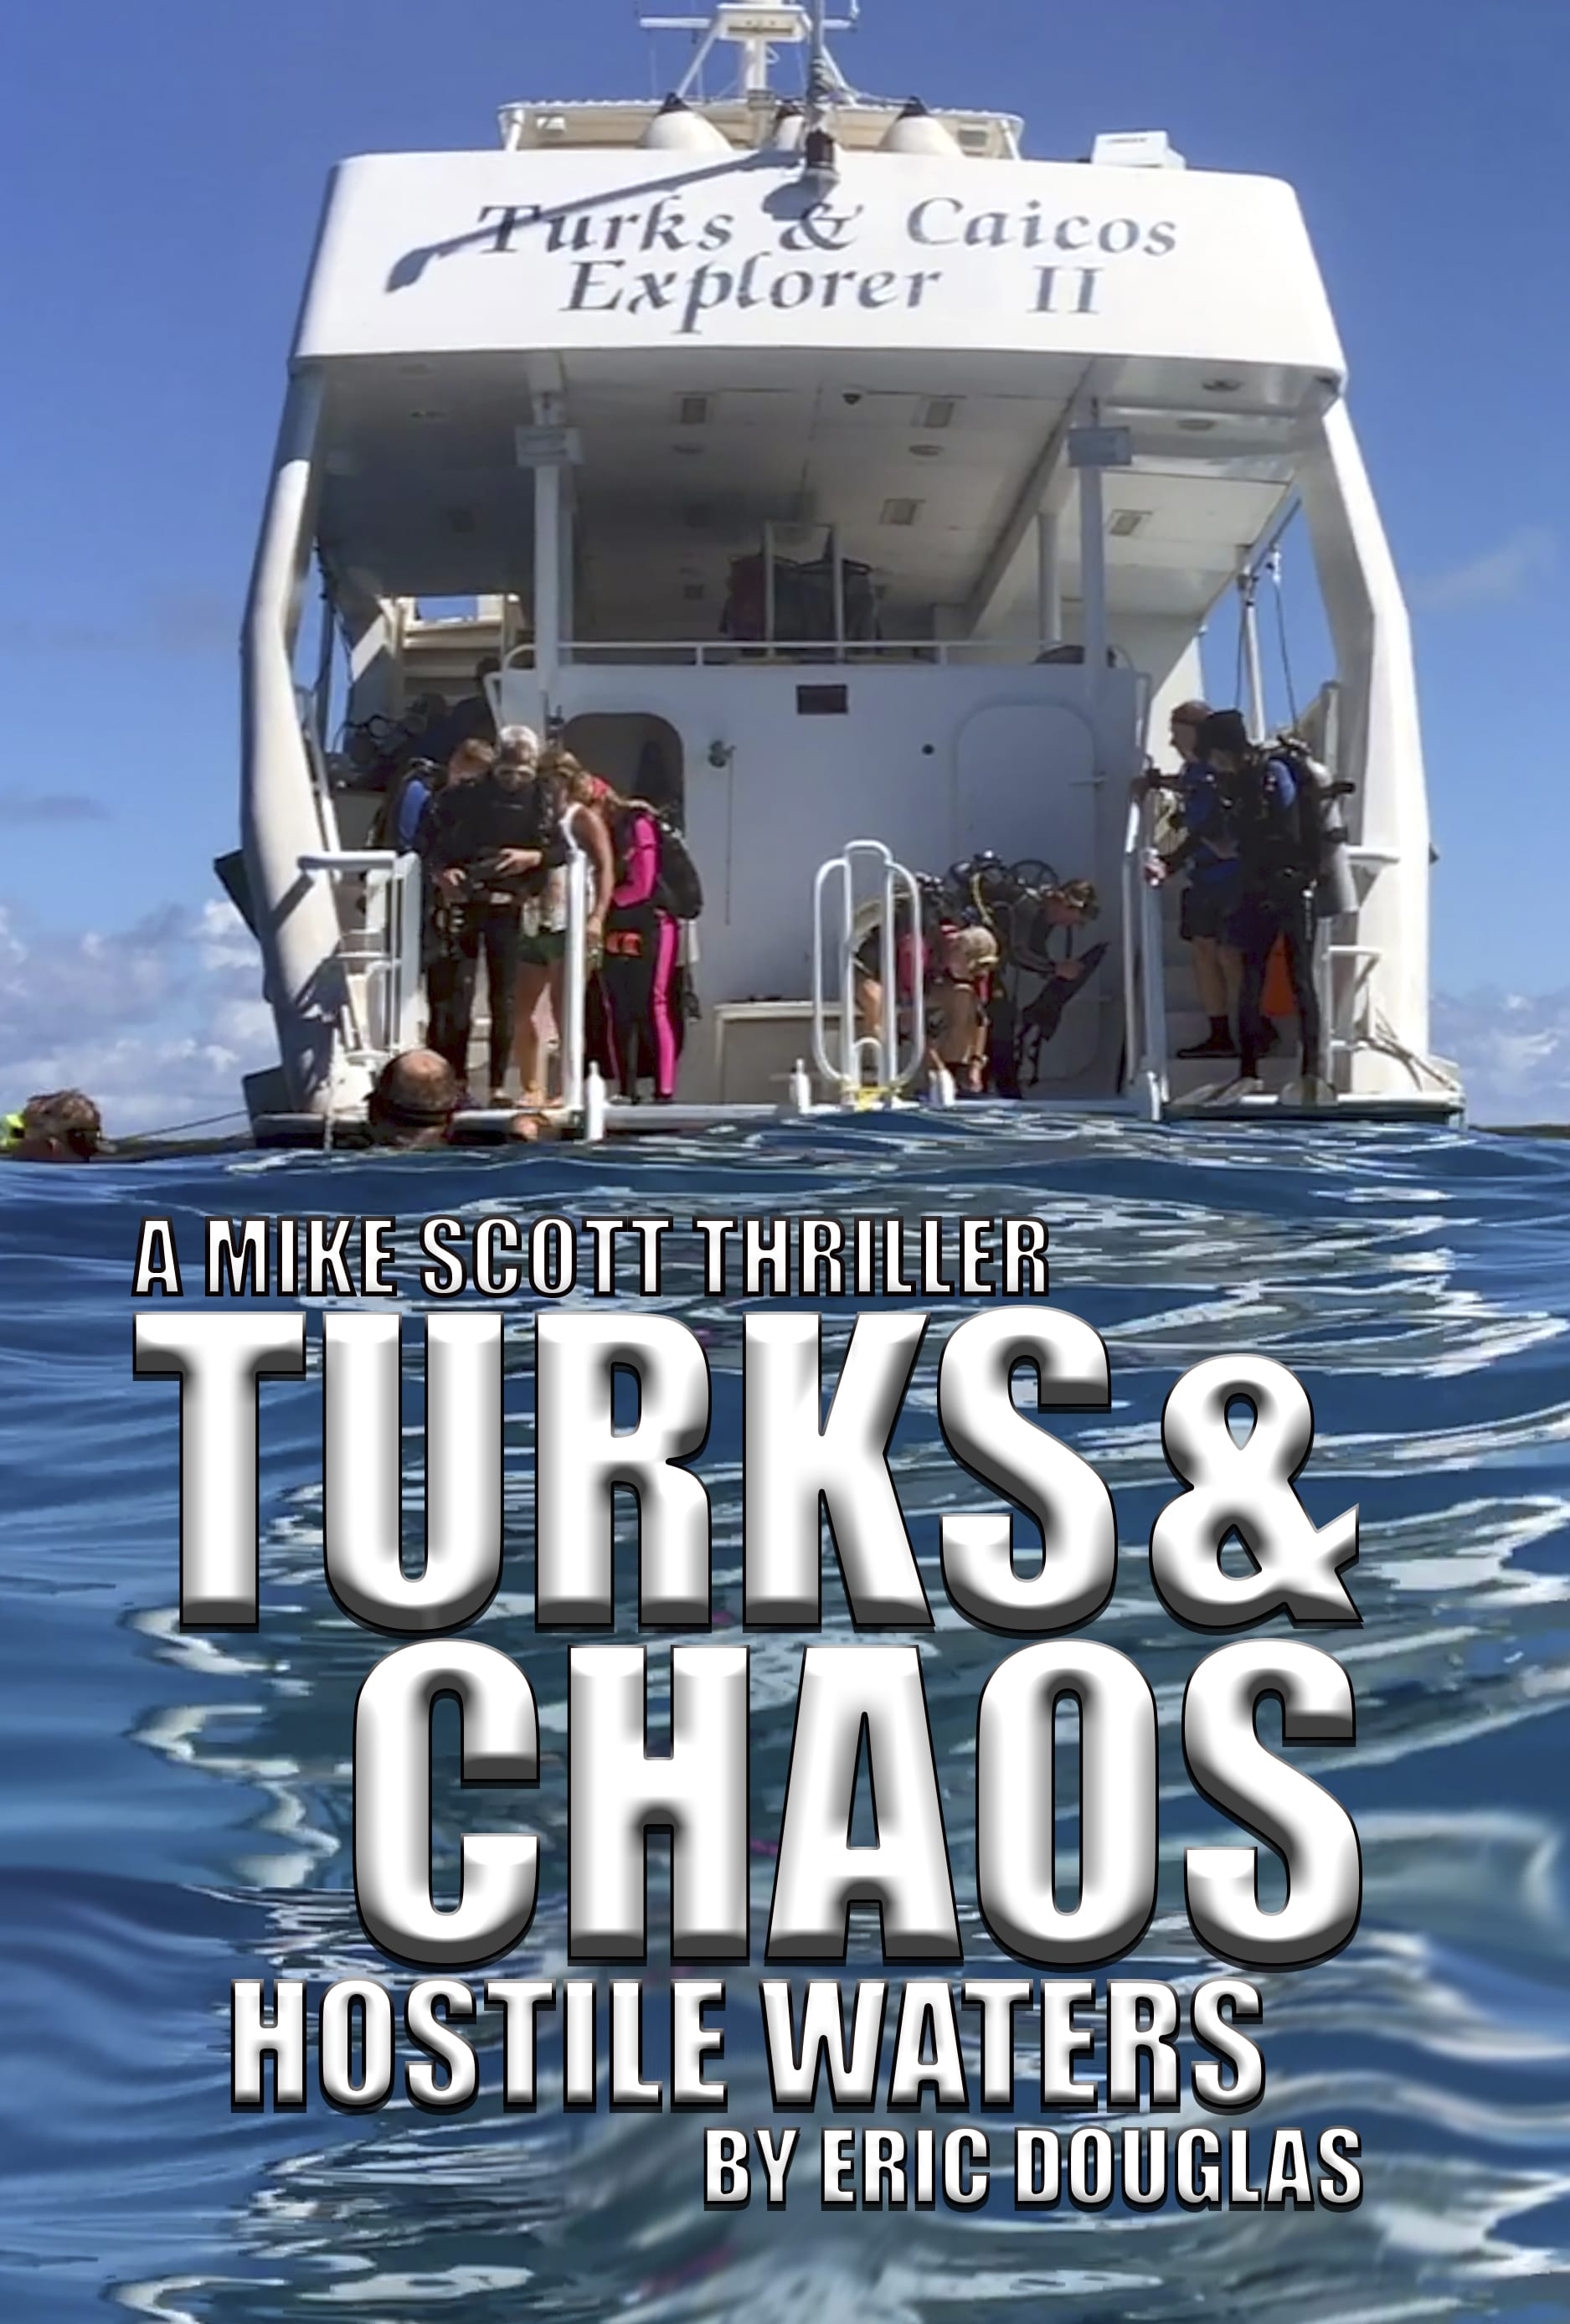 'Turks and Chaos: Hostile Waters' Audiobook Now Available